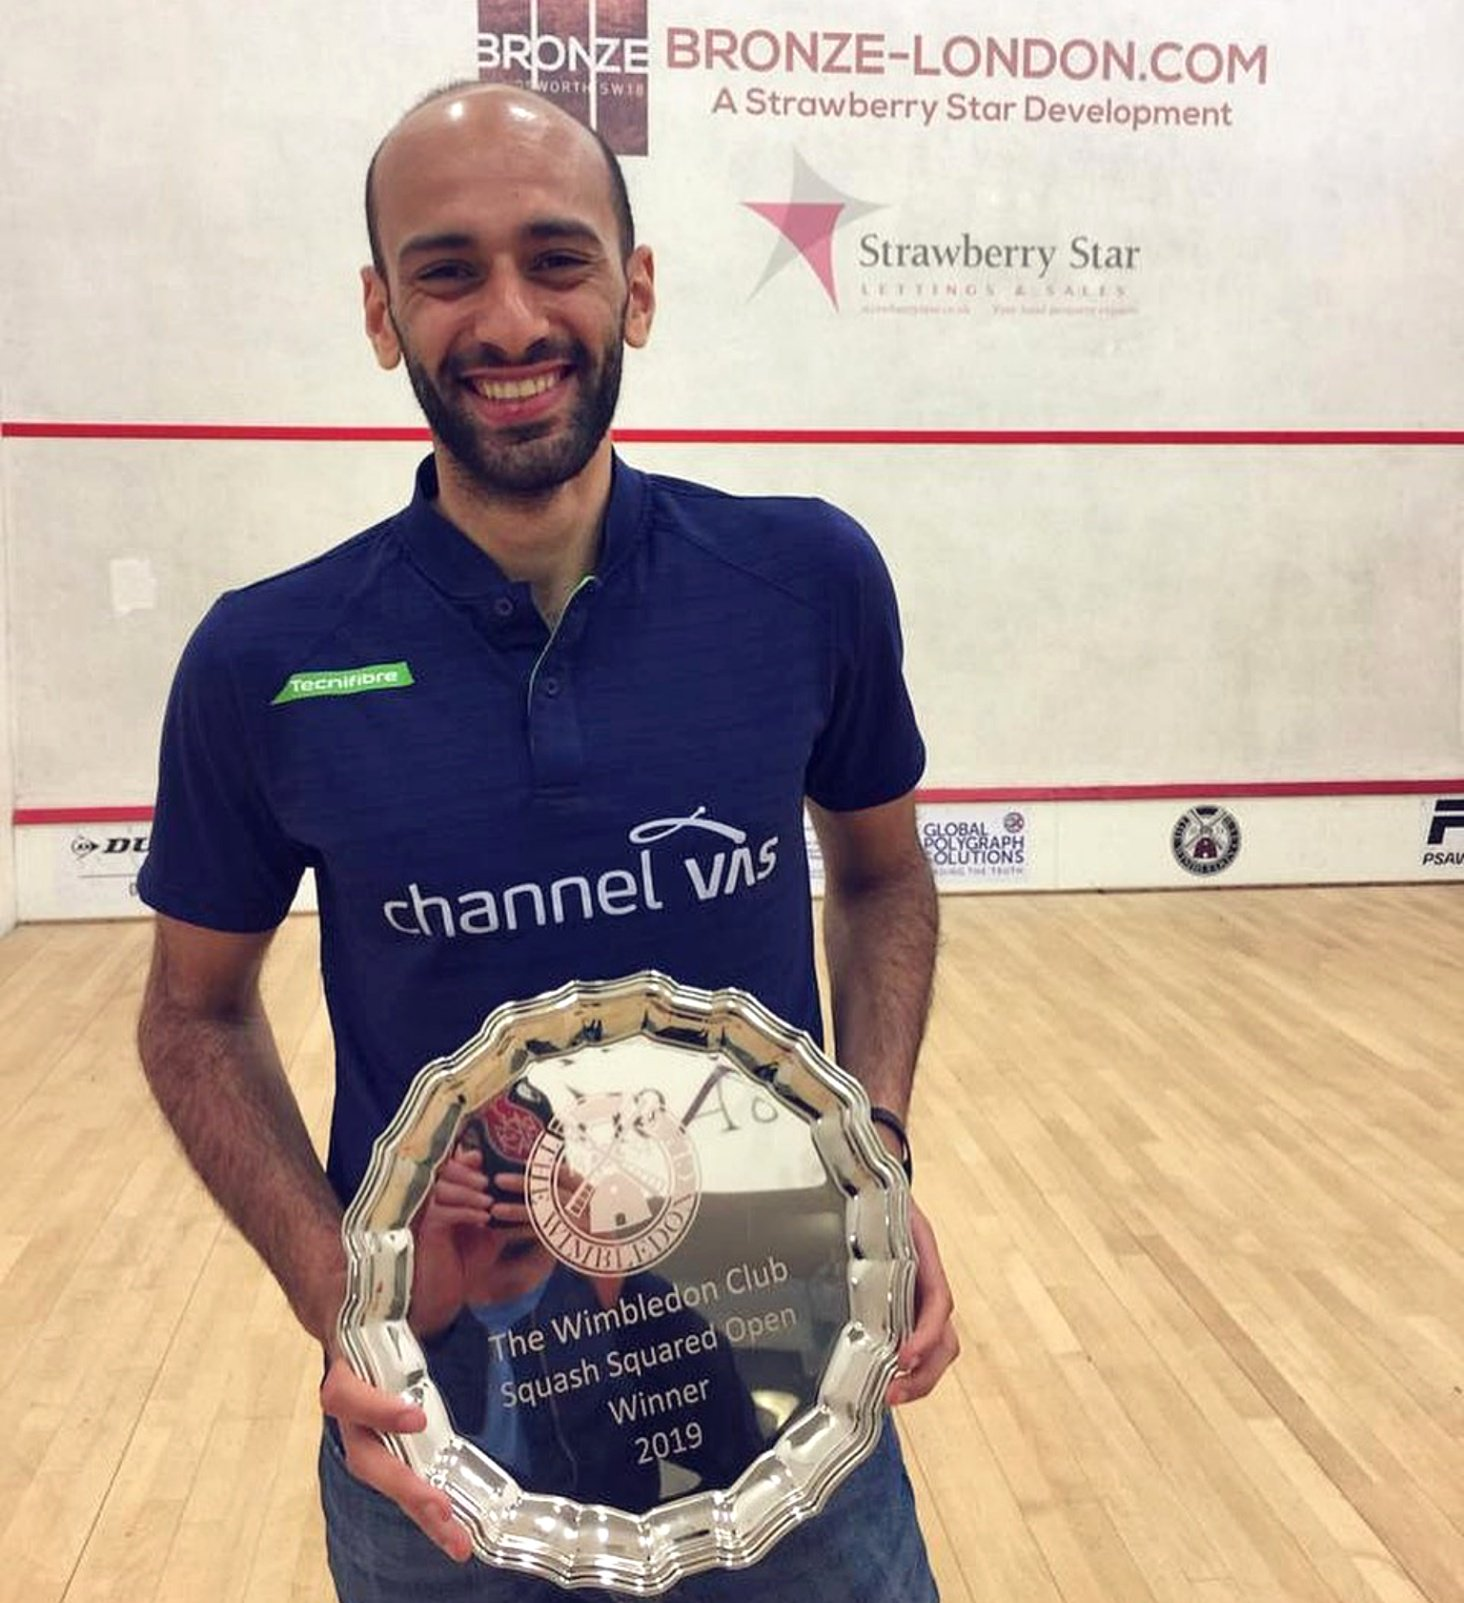 Congratulations to @maelshorbagy , Squash Squared Open Champion 2019 https://t.co/ypf4Lz5TmY